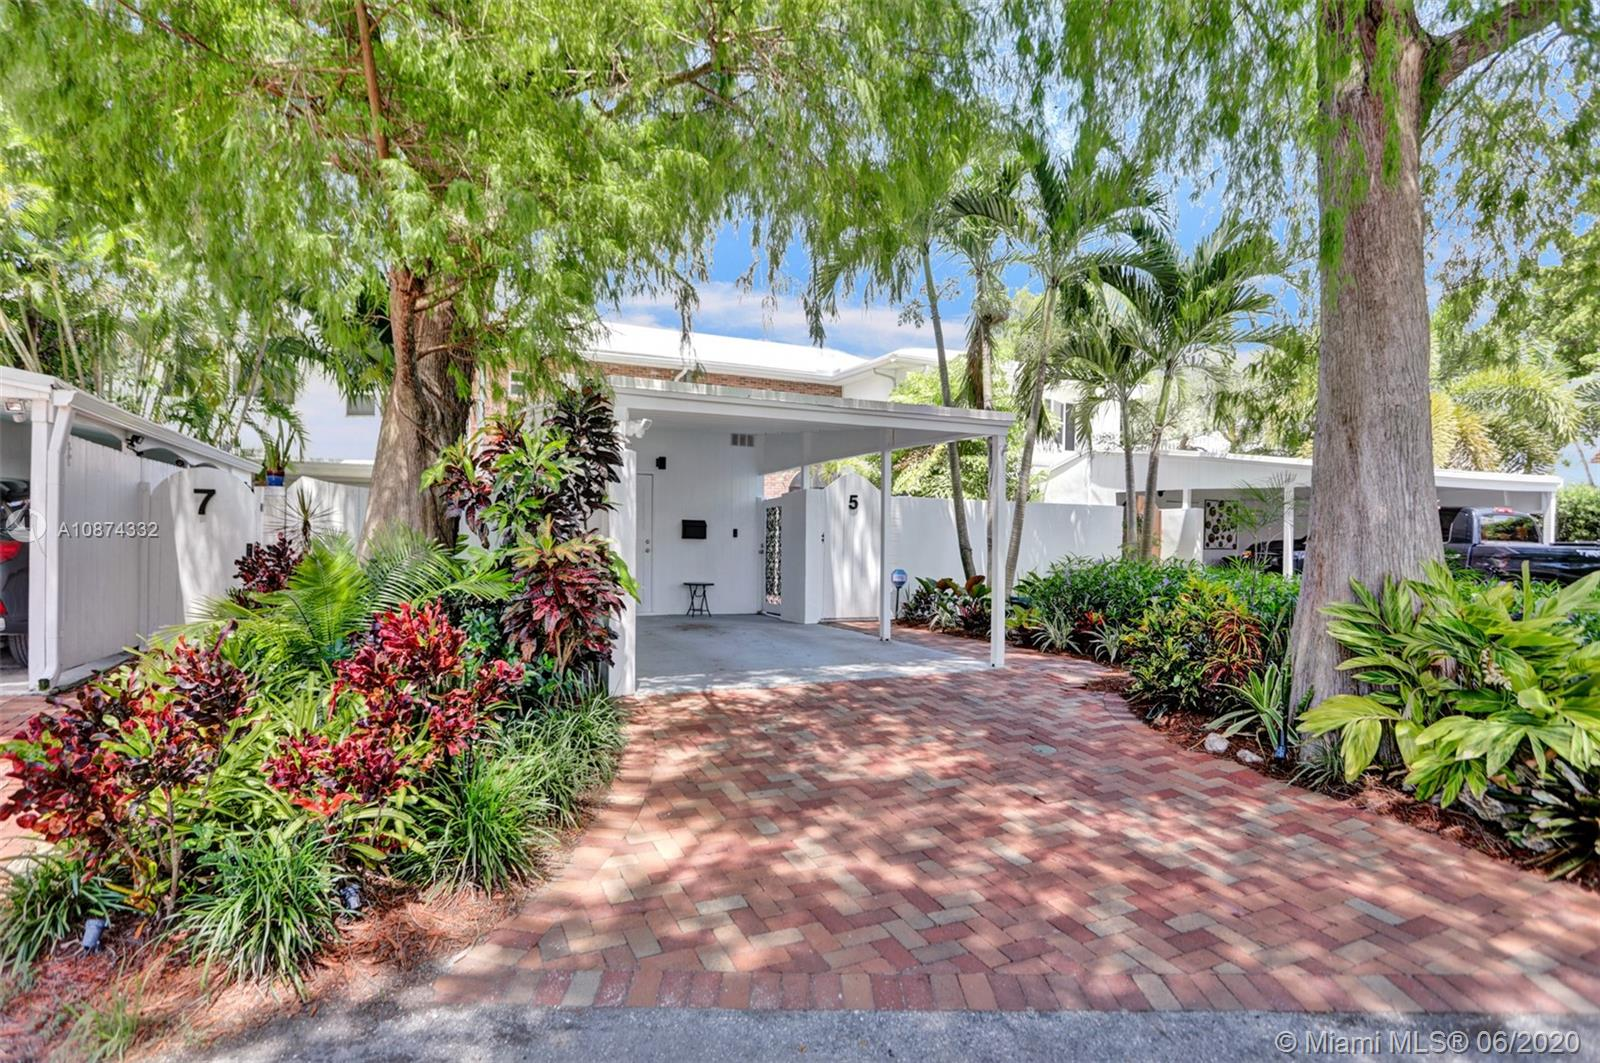 Rare Mid-Century modern townhouse in Wilton Manors.  A unique 1/1.5 with a private oversized gated courtyard with all the finest updates.  Brand new kitchen, custom modern cabinets, quartz countertop, whirlpool appliances.  LED lighting throughout, modern fixtures, custom blinds, impact windows & doors, new tile flooring on first floor and refinished wood stairs.  Master bath remodeled with extra large shower,  sleek new vanities in both bathrooms. Large master bedroom with walk-in closet.  Interior and Exterior freshly painted.  Pavered courtyard has new faux boxwood fencing.  Brand New A/C unit, New Water Main Line, Resealed roof, Termite Warranty, and Ring Security System. Low-maintenance, move in ready. All nestled in a quiet location of Wilton Manors but walkable to The Drive.